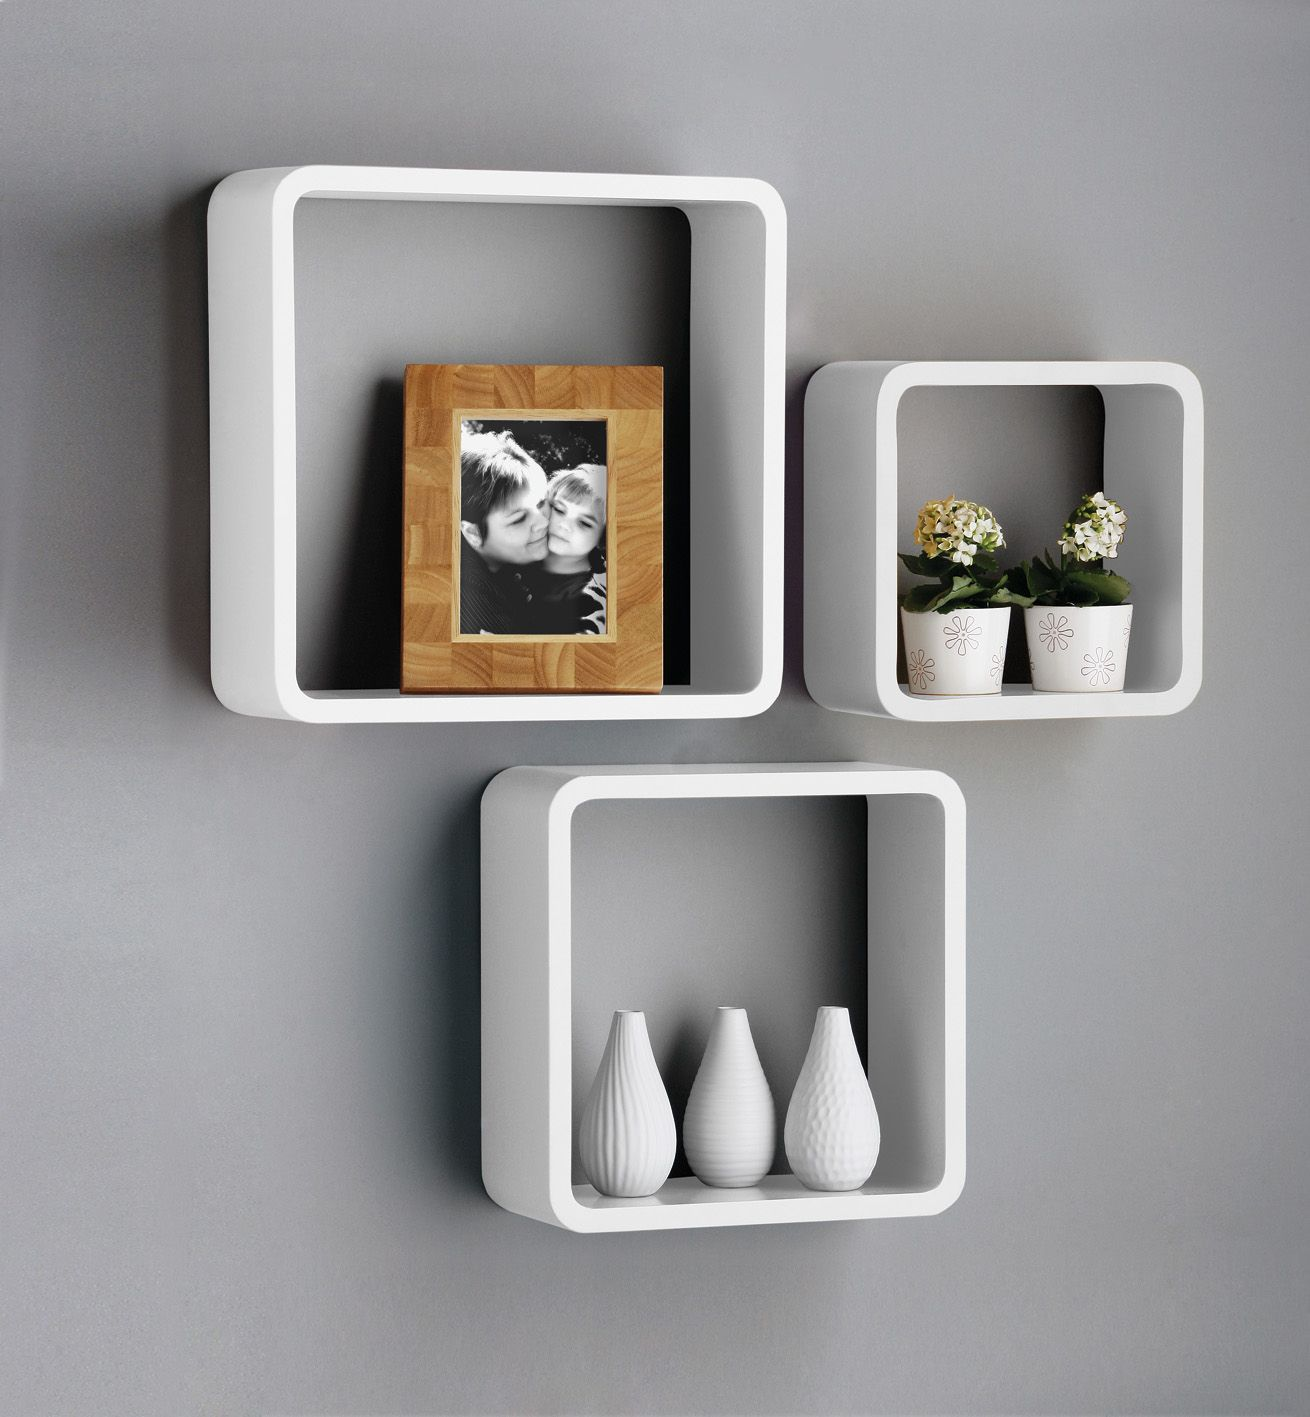 details about new set white black square floating cube wall box shelves storage shelf cubes salvaged fireplace mantels bunnings wood building mantel with crown molding bright